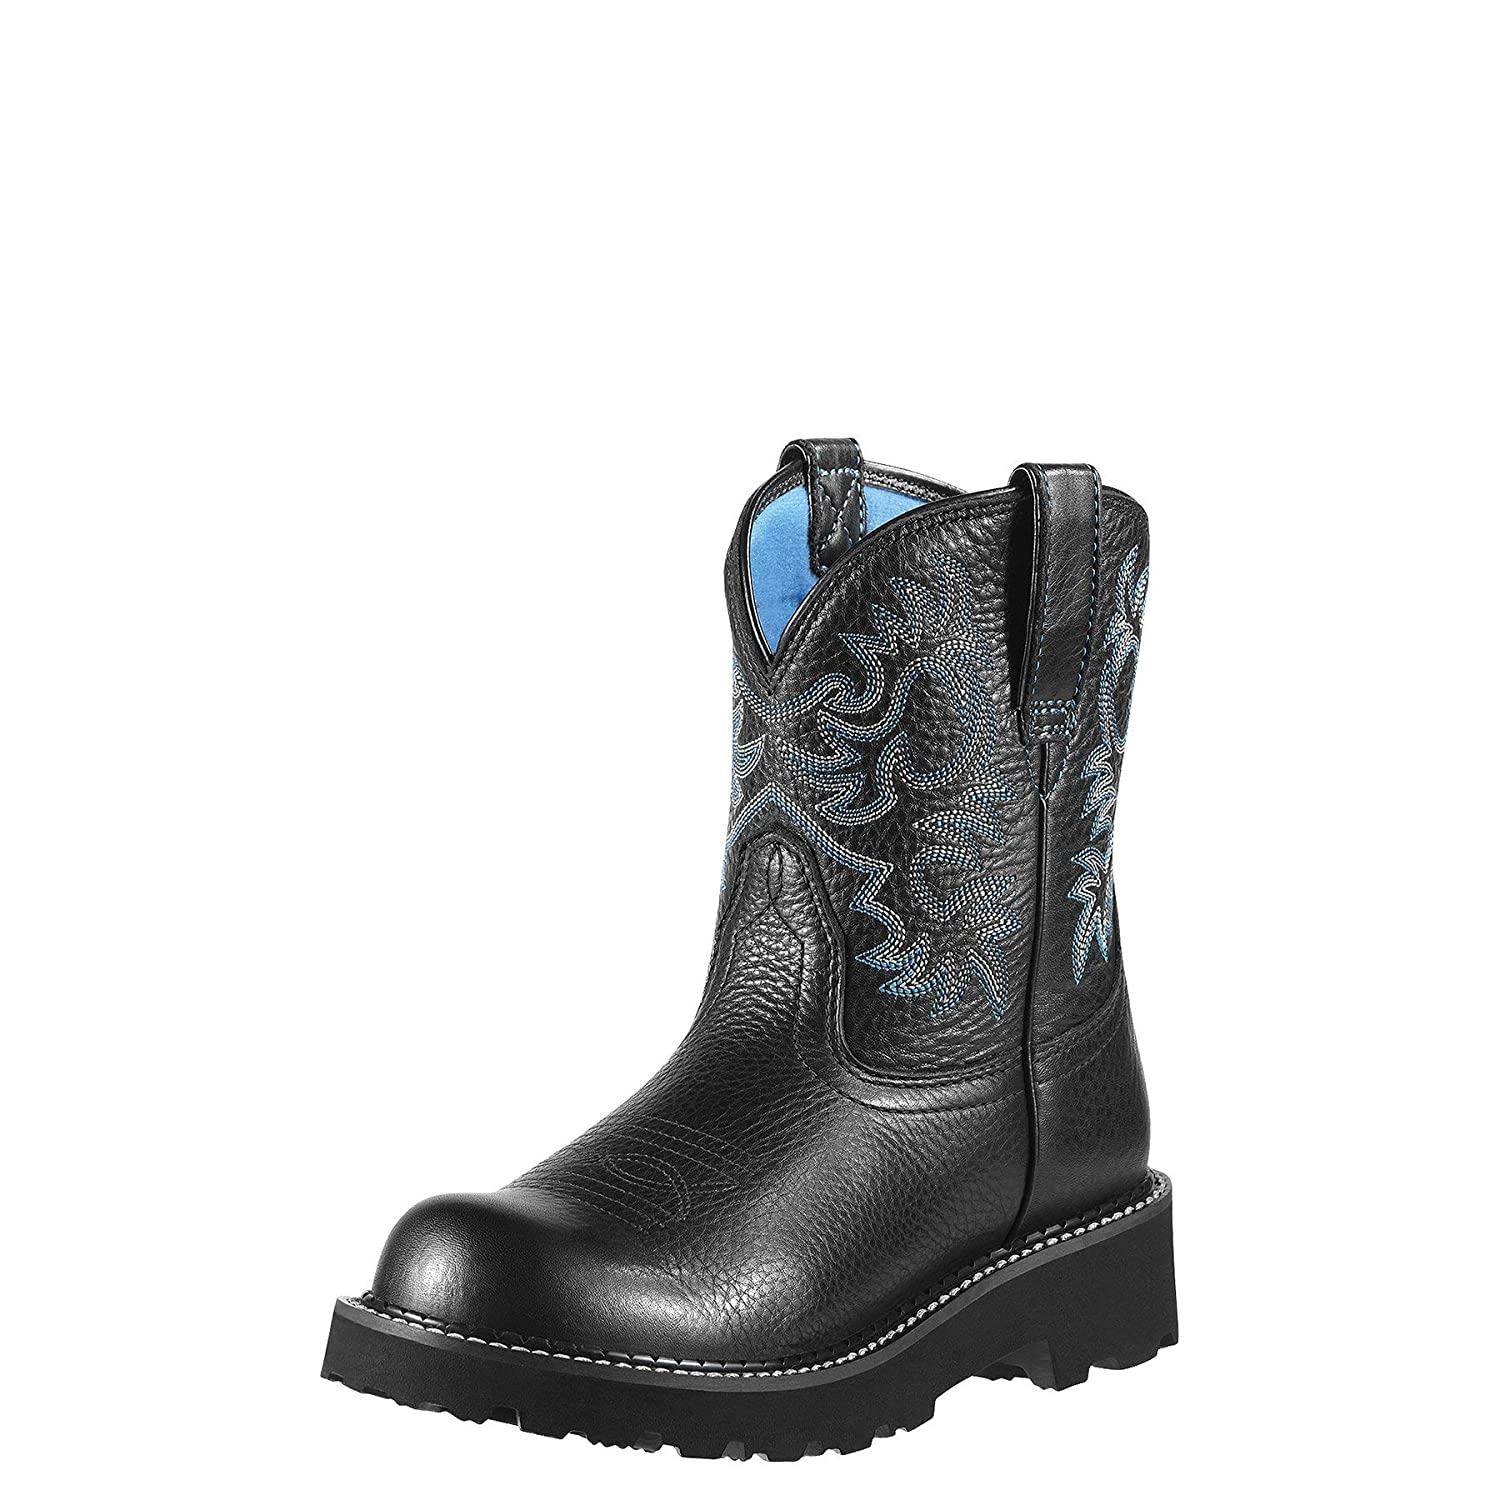 2635a69ccfe Ariat Women's Fatbaby Heritage Western Cowboy Boot